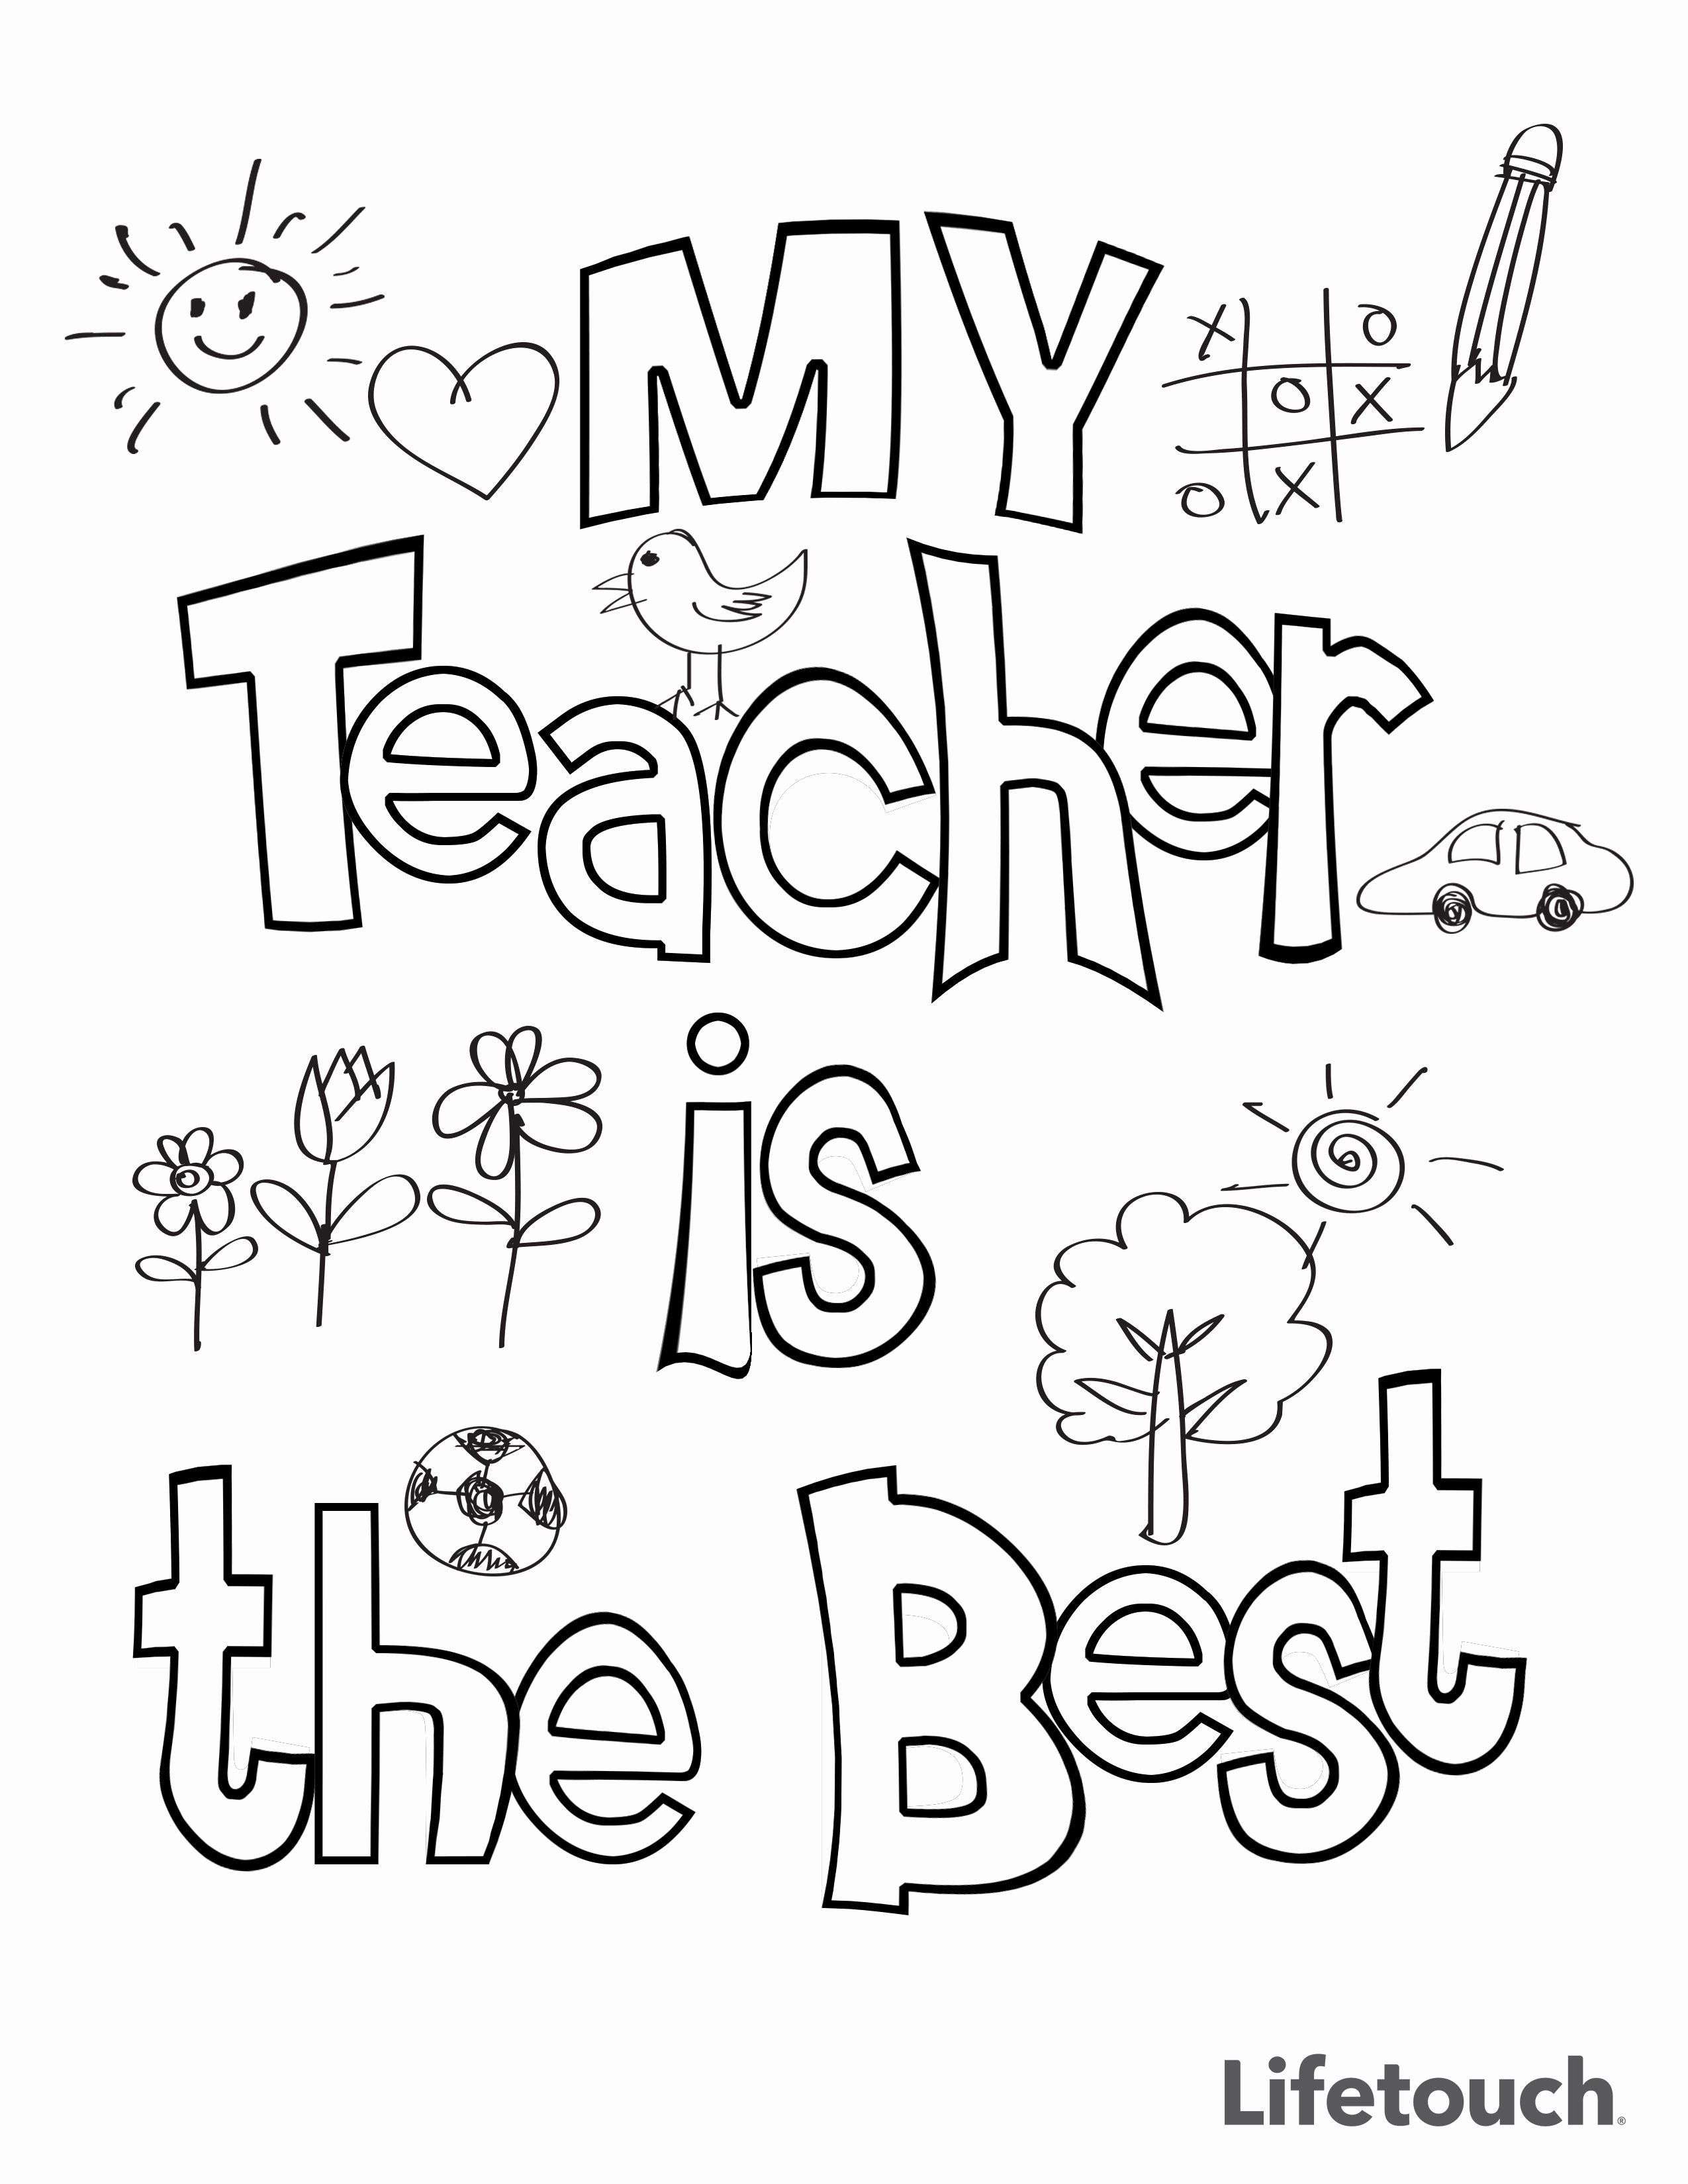 coloring printable thank you card for teacher my teacher is the best doodle coloring page from teacher printable card teacher you thank coloring for